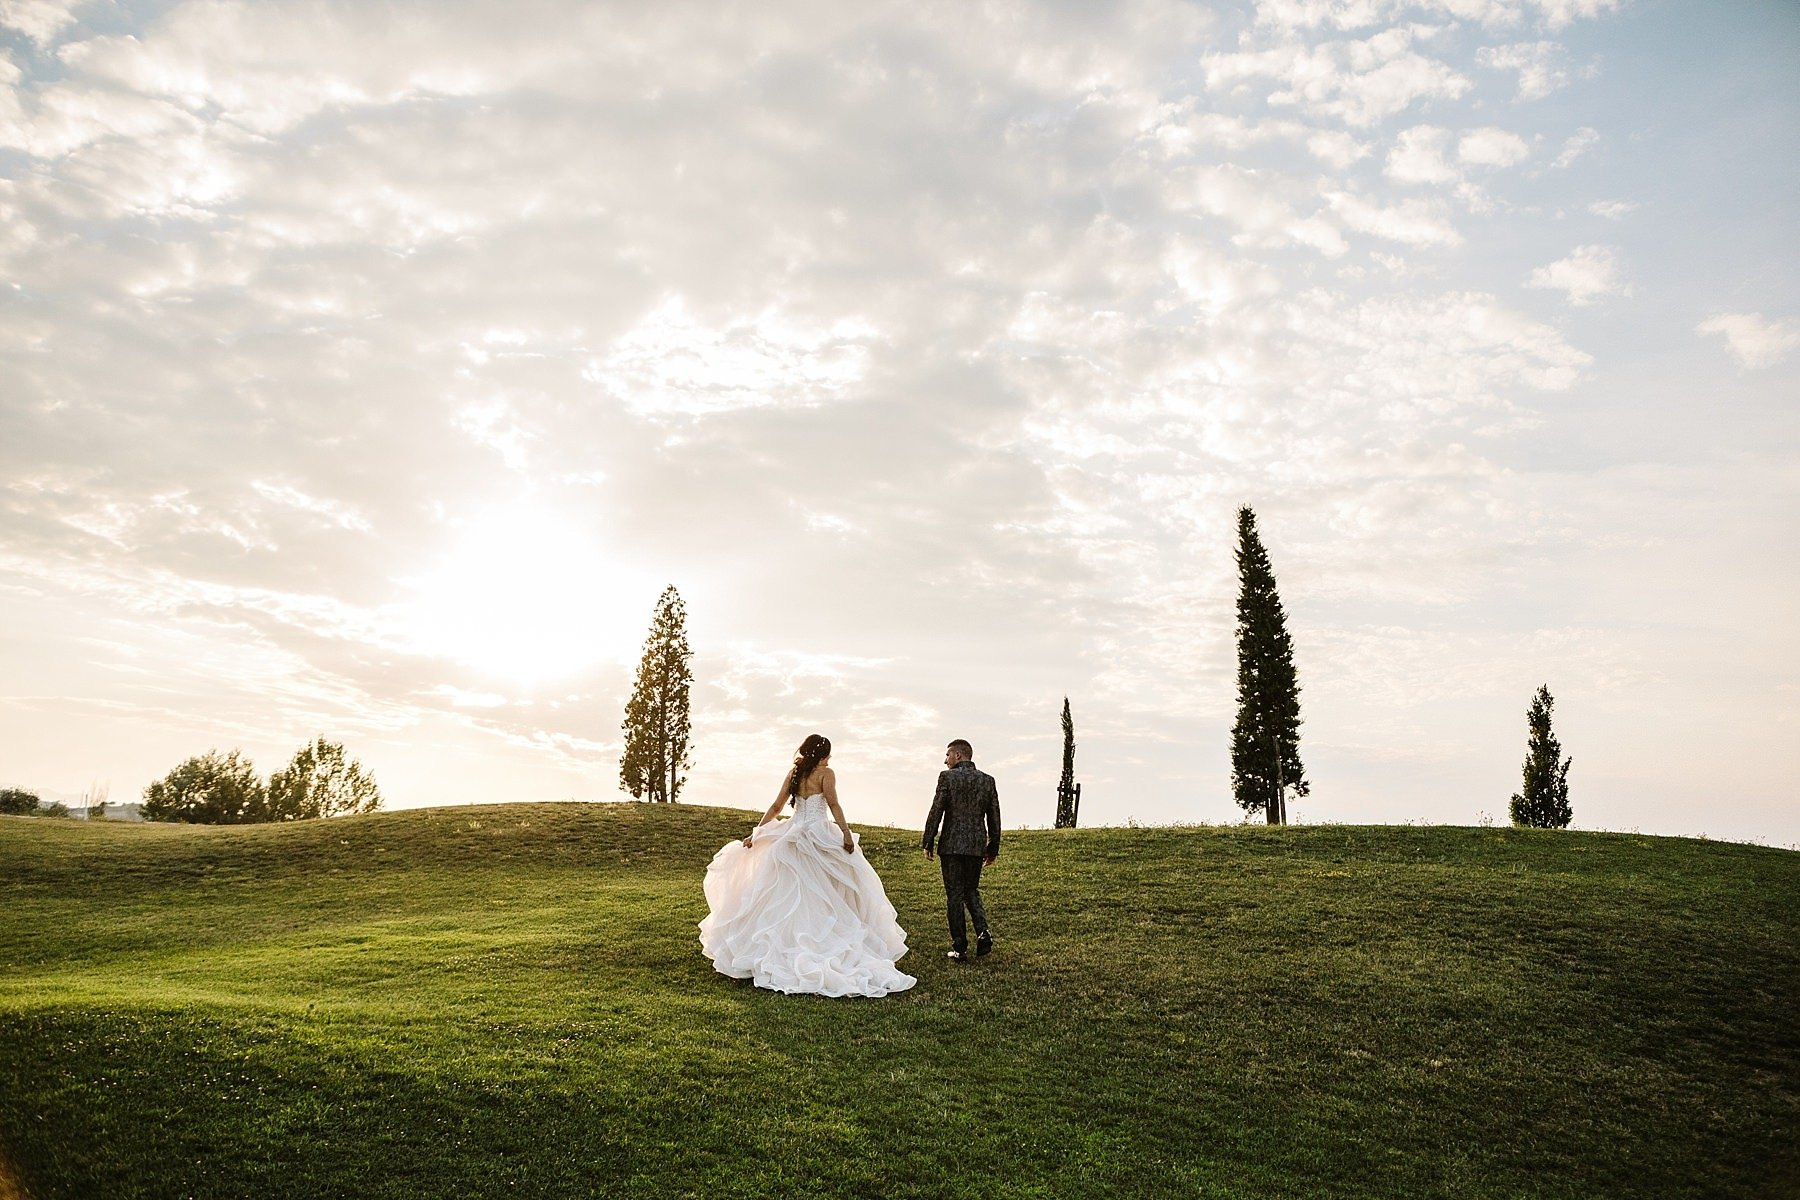 047-fotografo-di-matrimoni-a-firenze-golf-bellosguardo_Wedding-SS